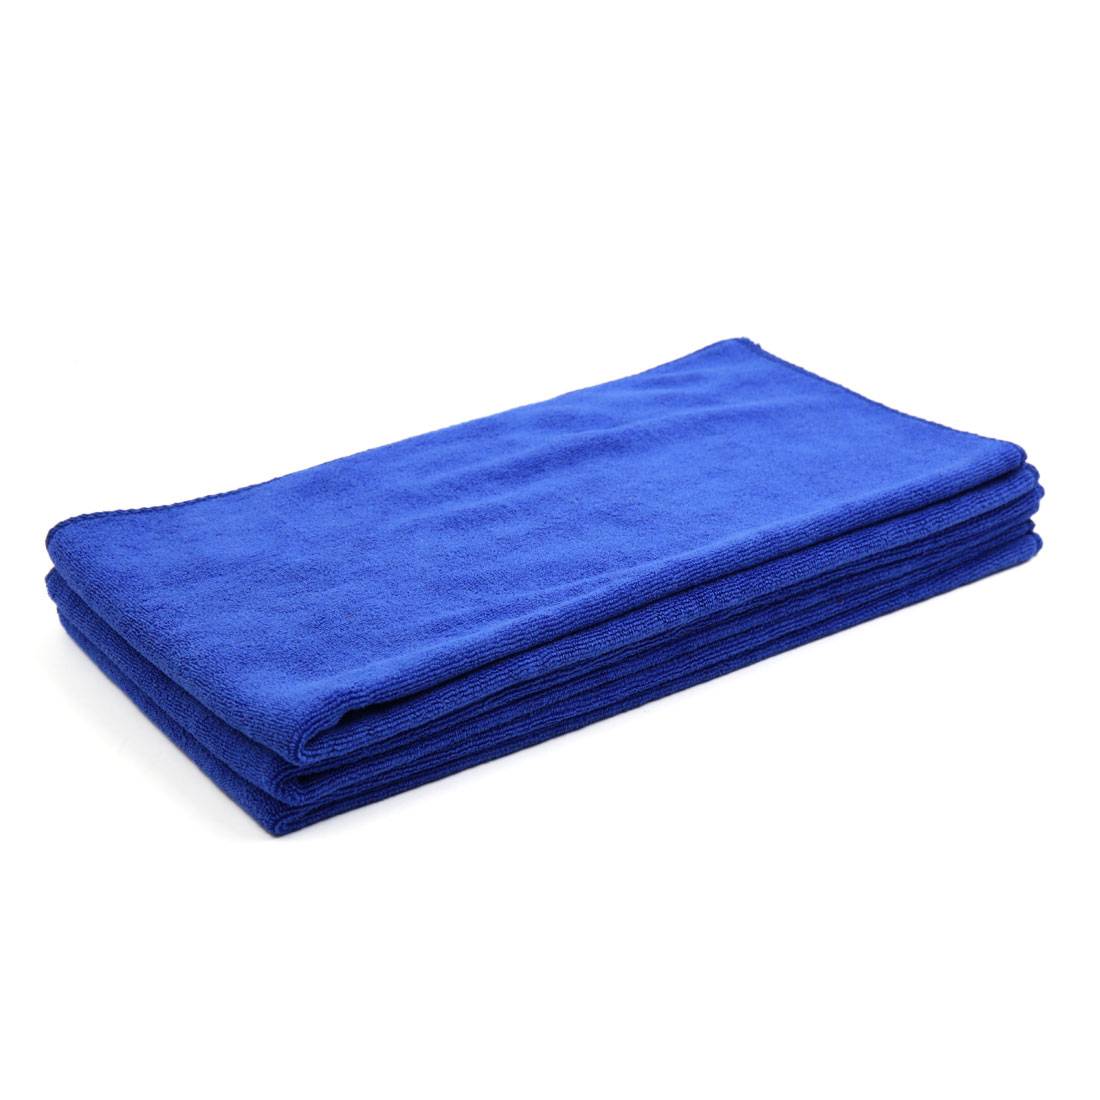 3pcs 400GSM 65cm x 33cm Blue Microfiber Polishing Cleaning Towel for Car Body